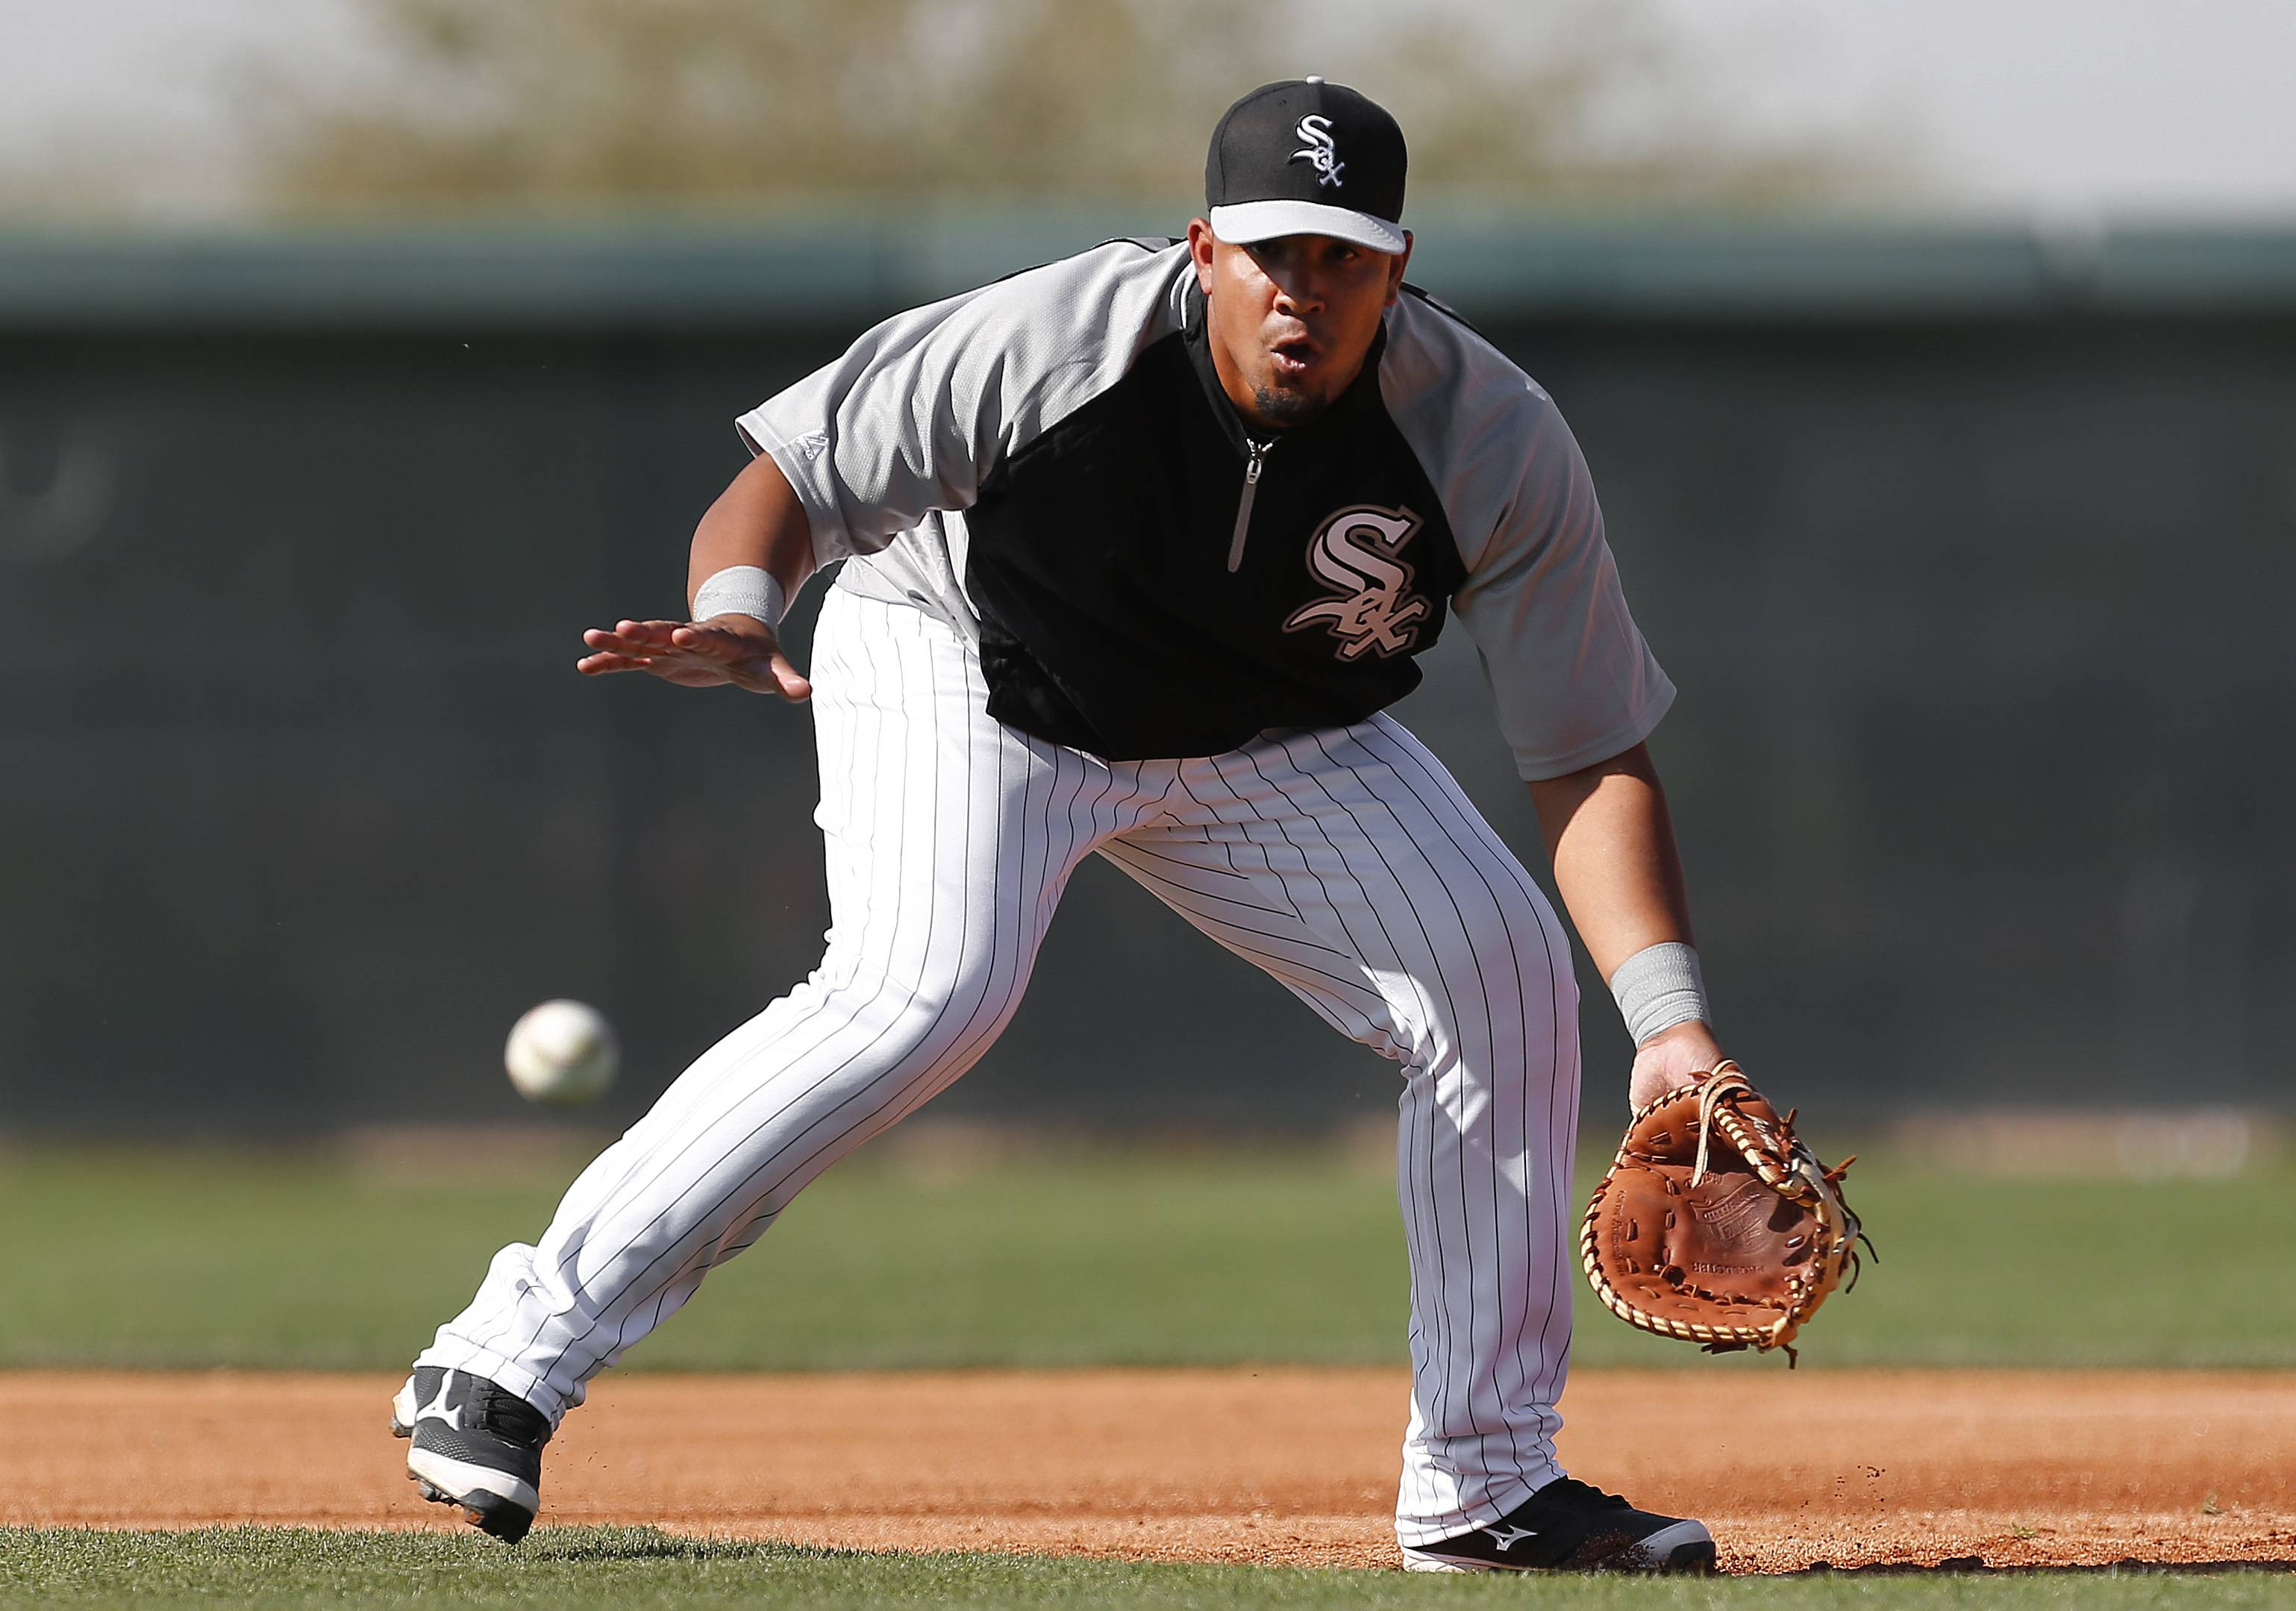 Chicago White Sox first baseman Jose Abreu has a $68 million contract that comes with a lot of pressure for a 27-year-old rookie.